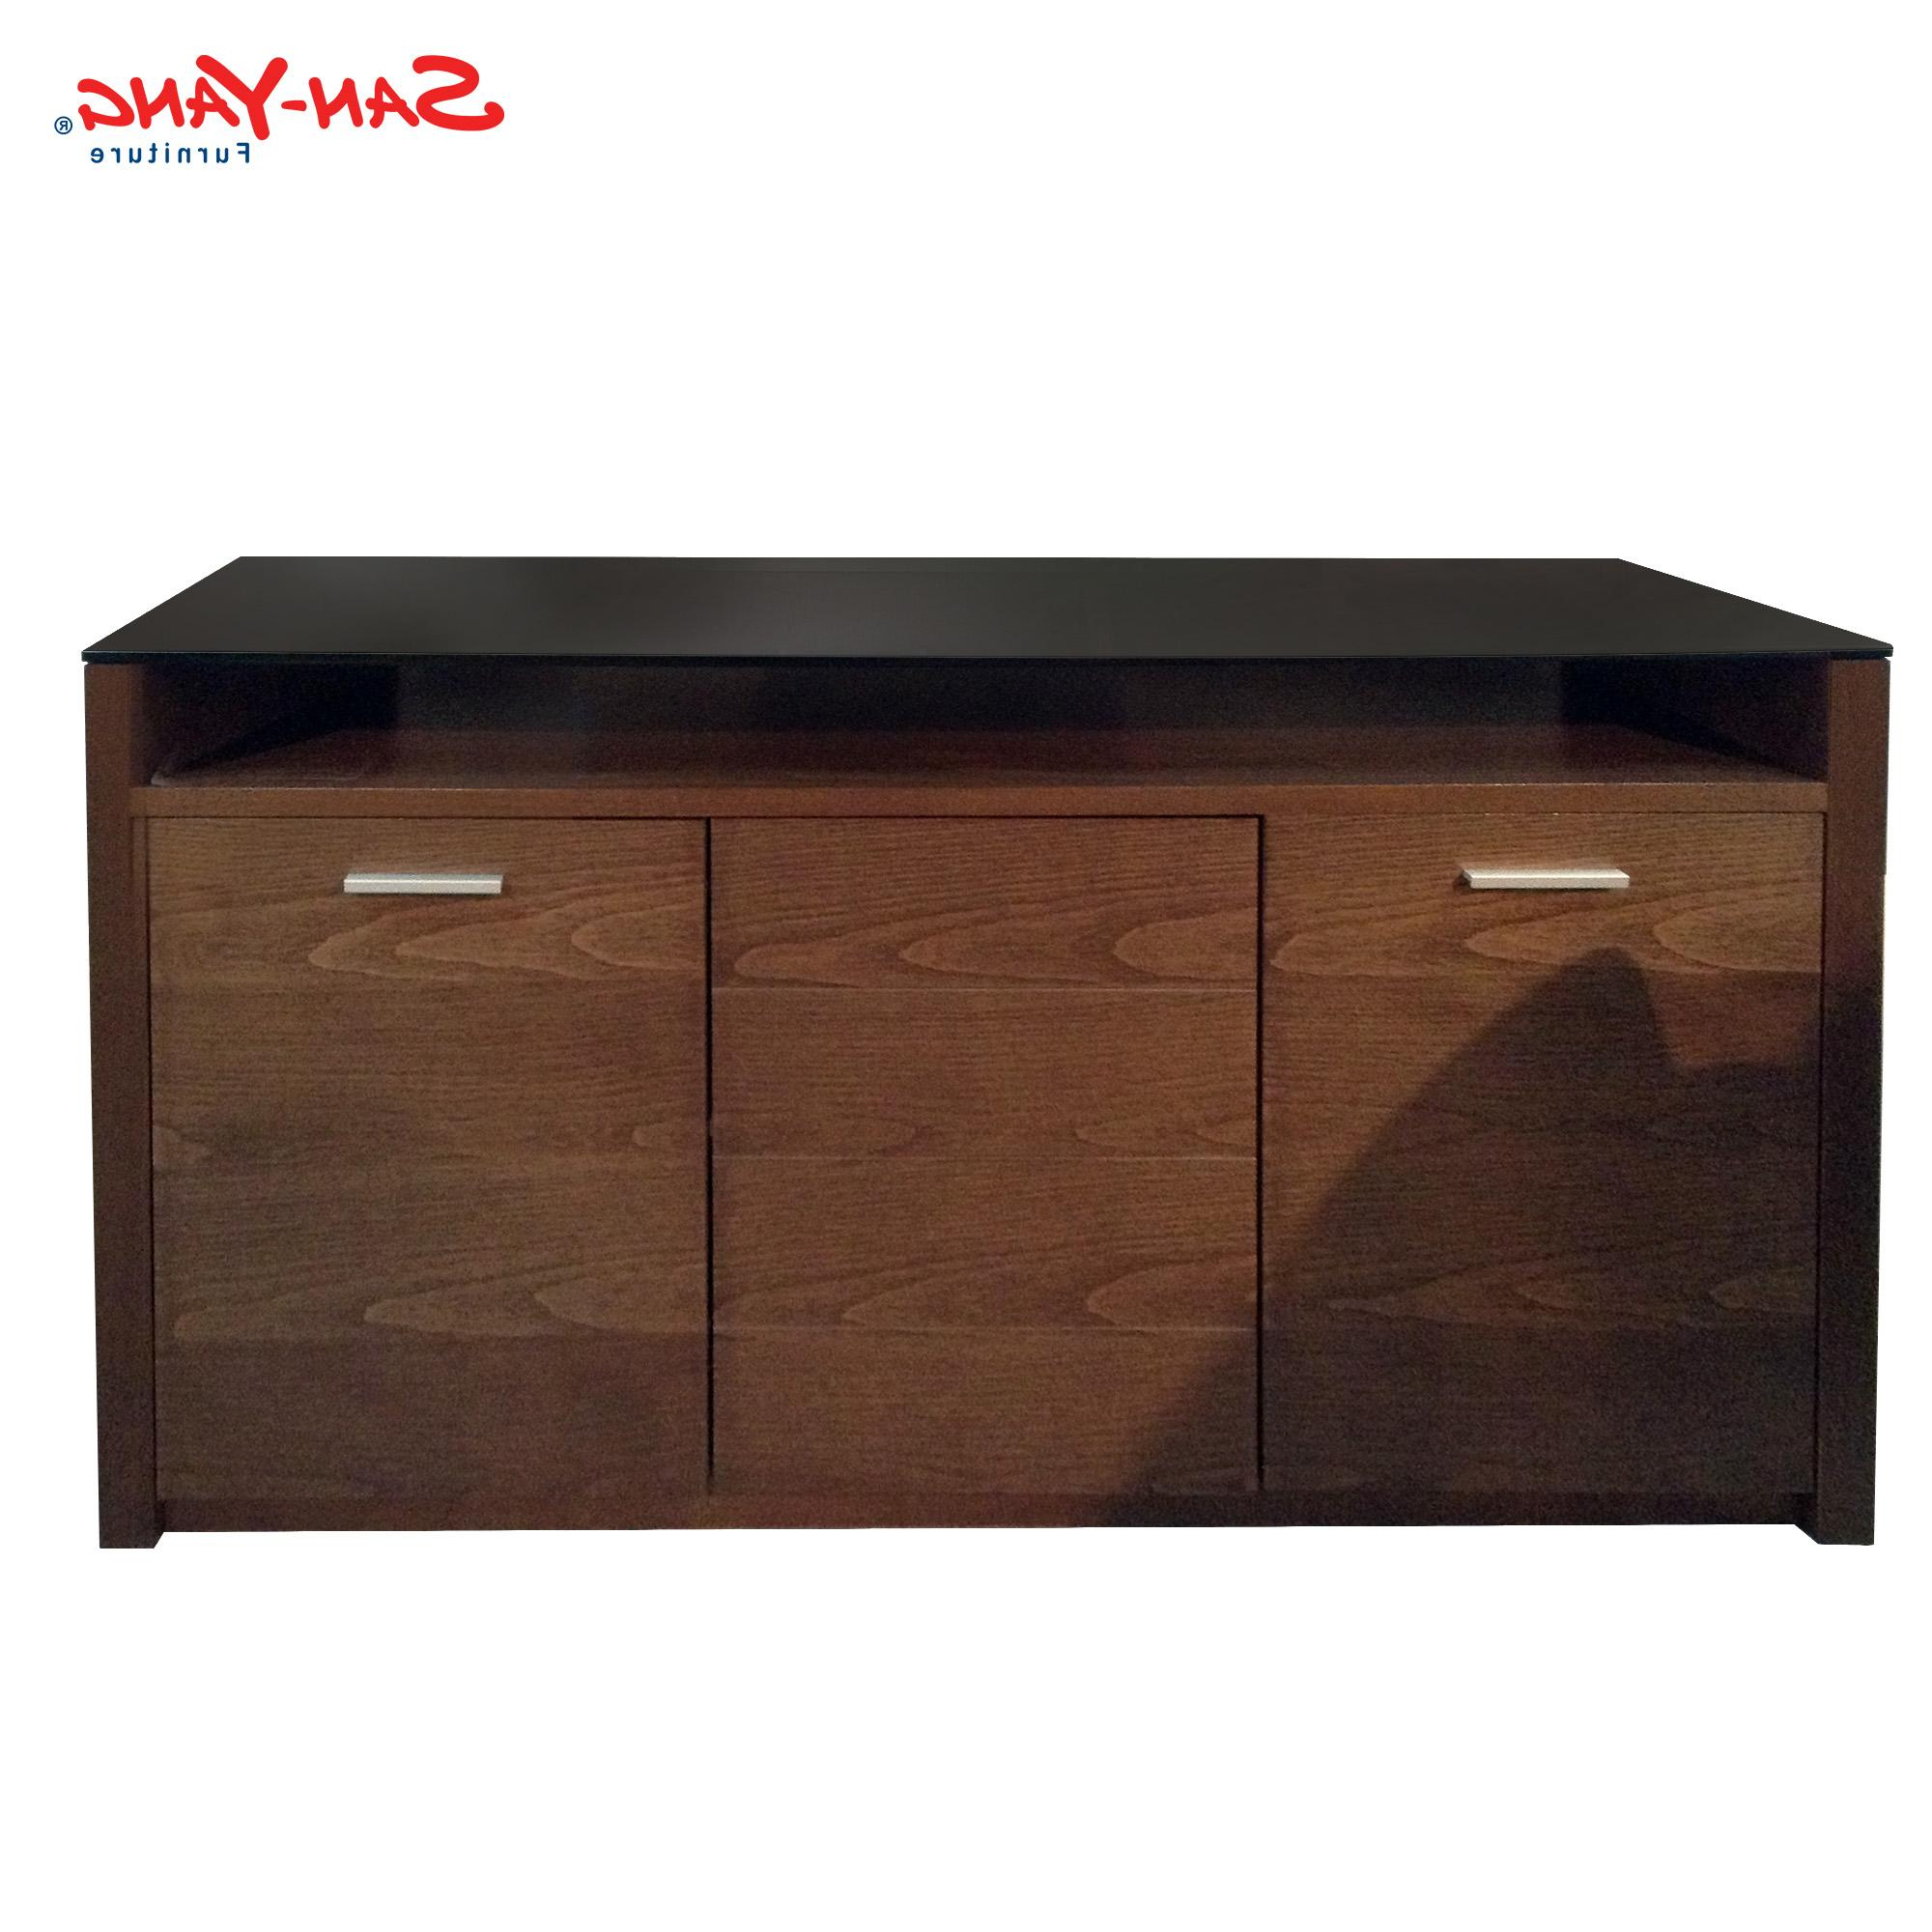 San Yang Buffet Cabinet Fbc8336 In Chalus Sideboards (View 18 of 20)